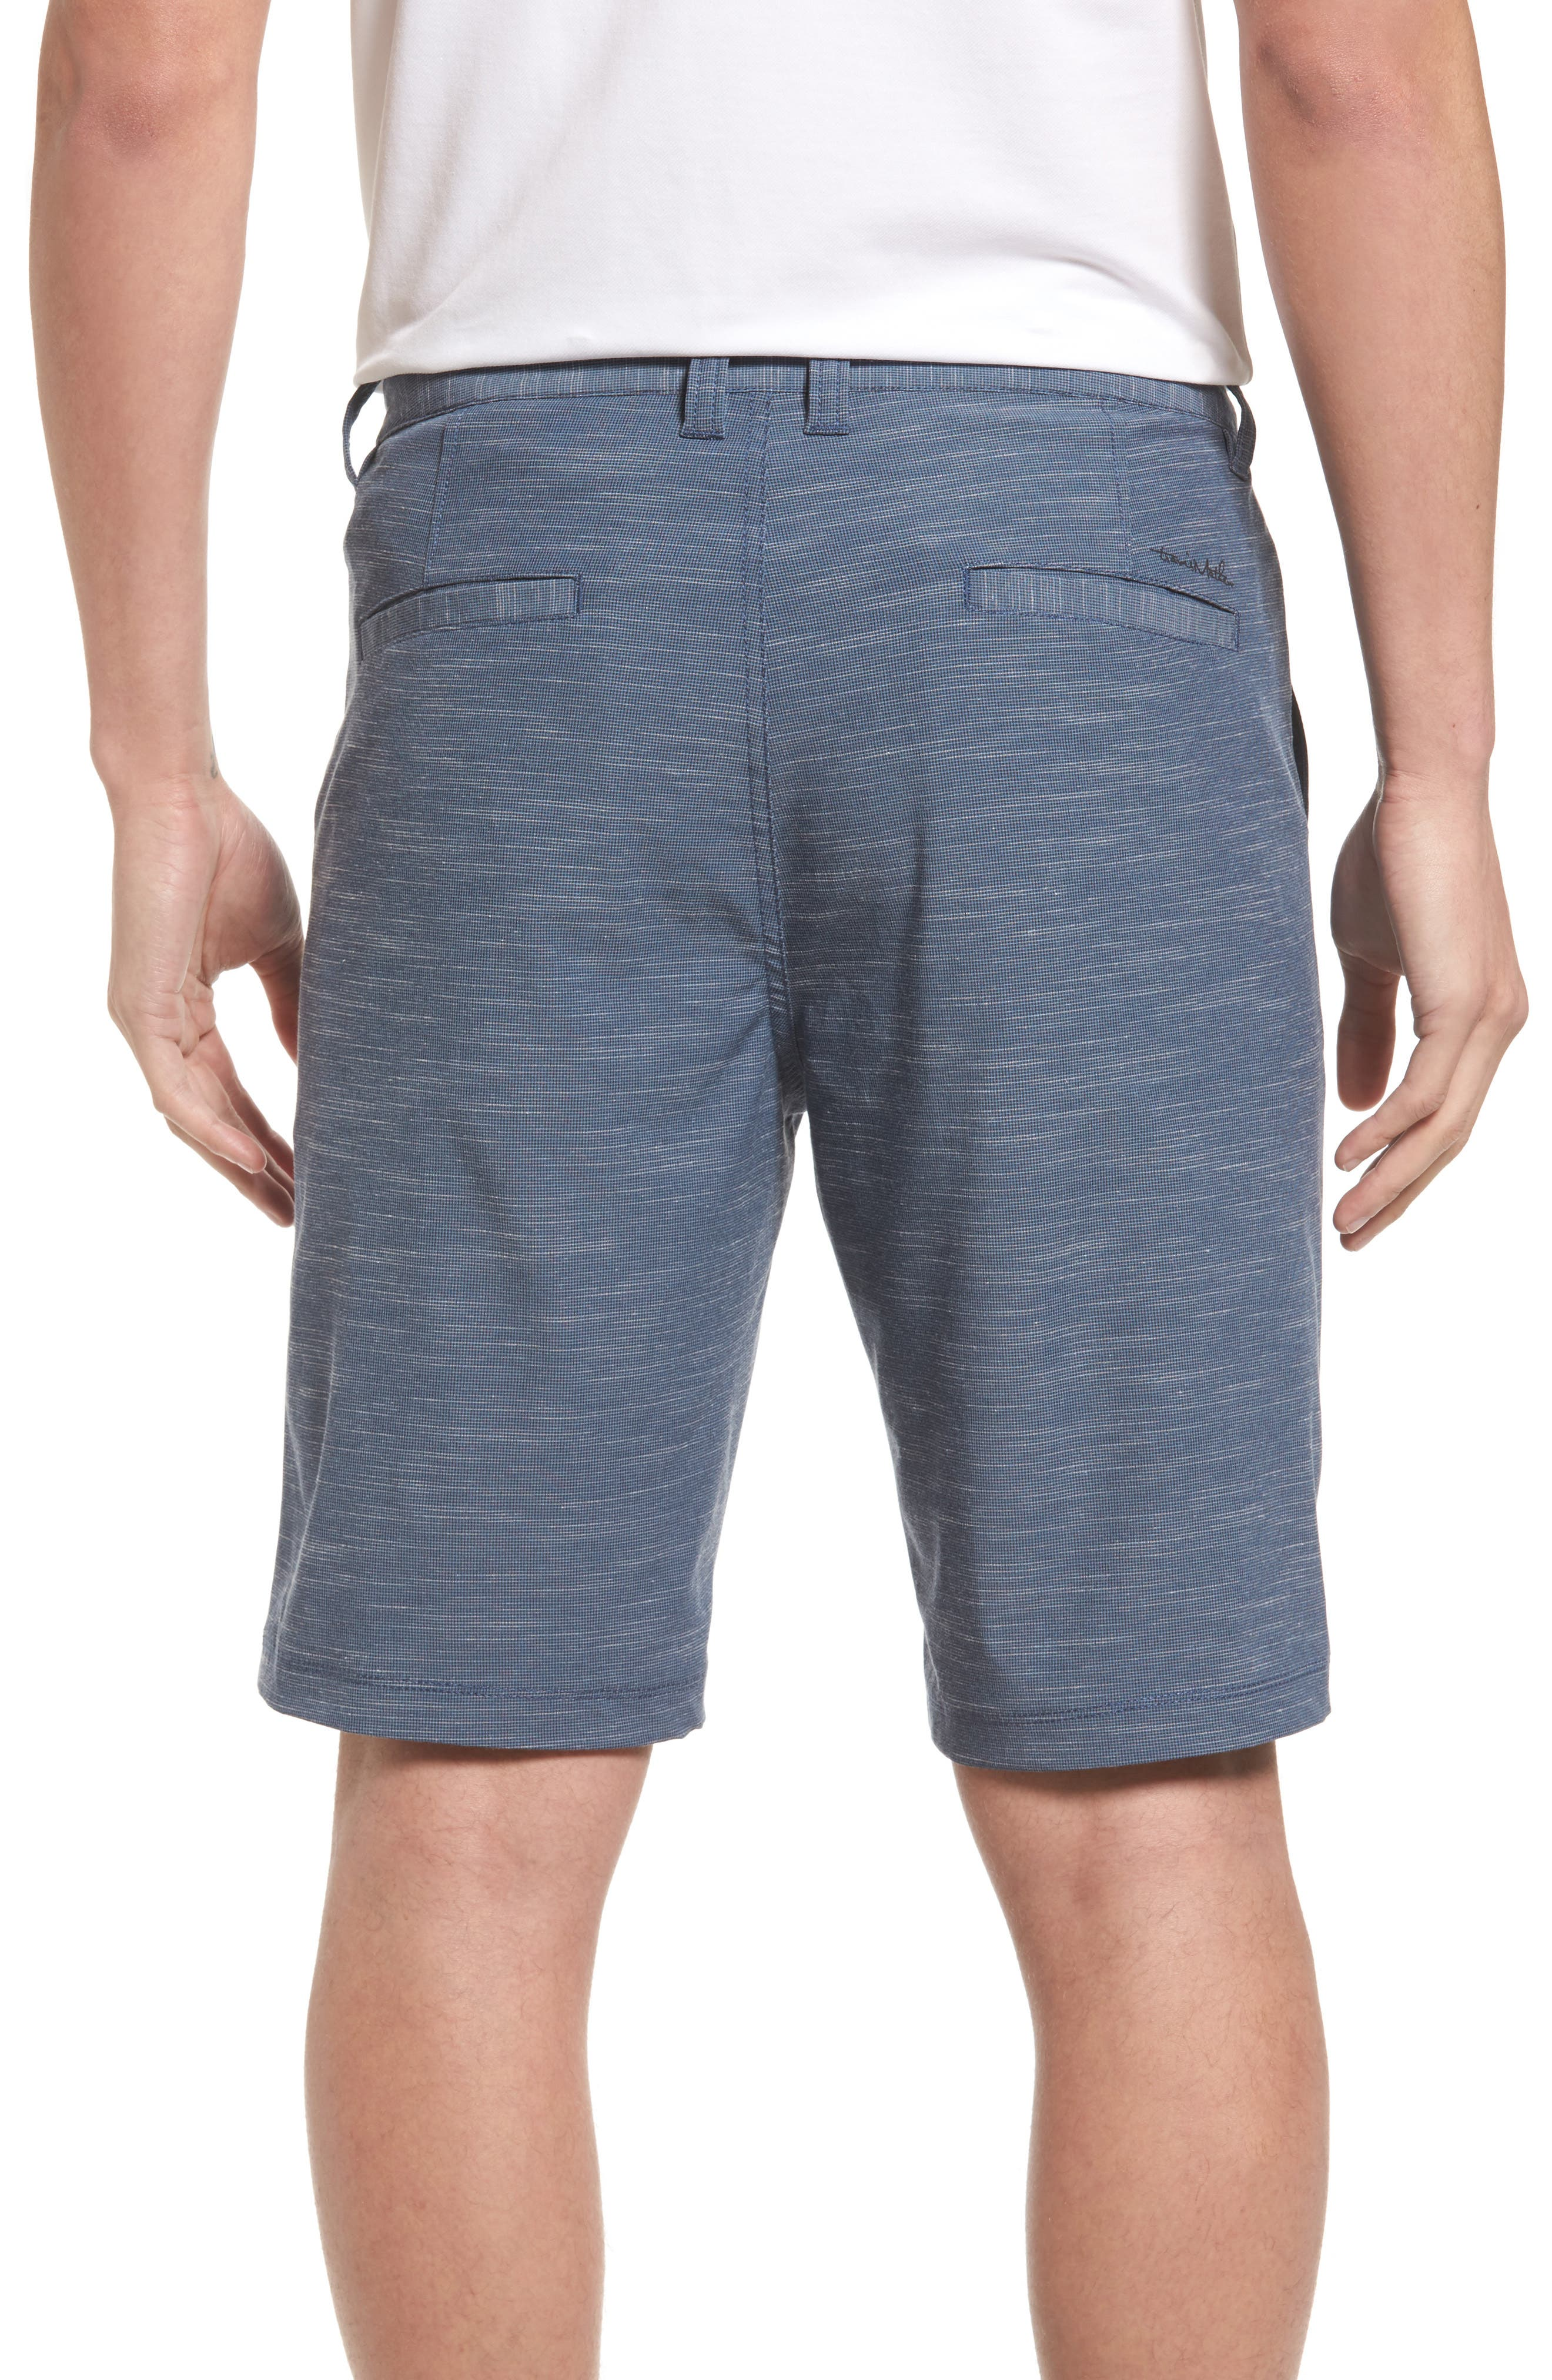 Fisher Shorts,                             Alternate thumbnail 2, color,                             Heather Blue Nights